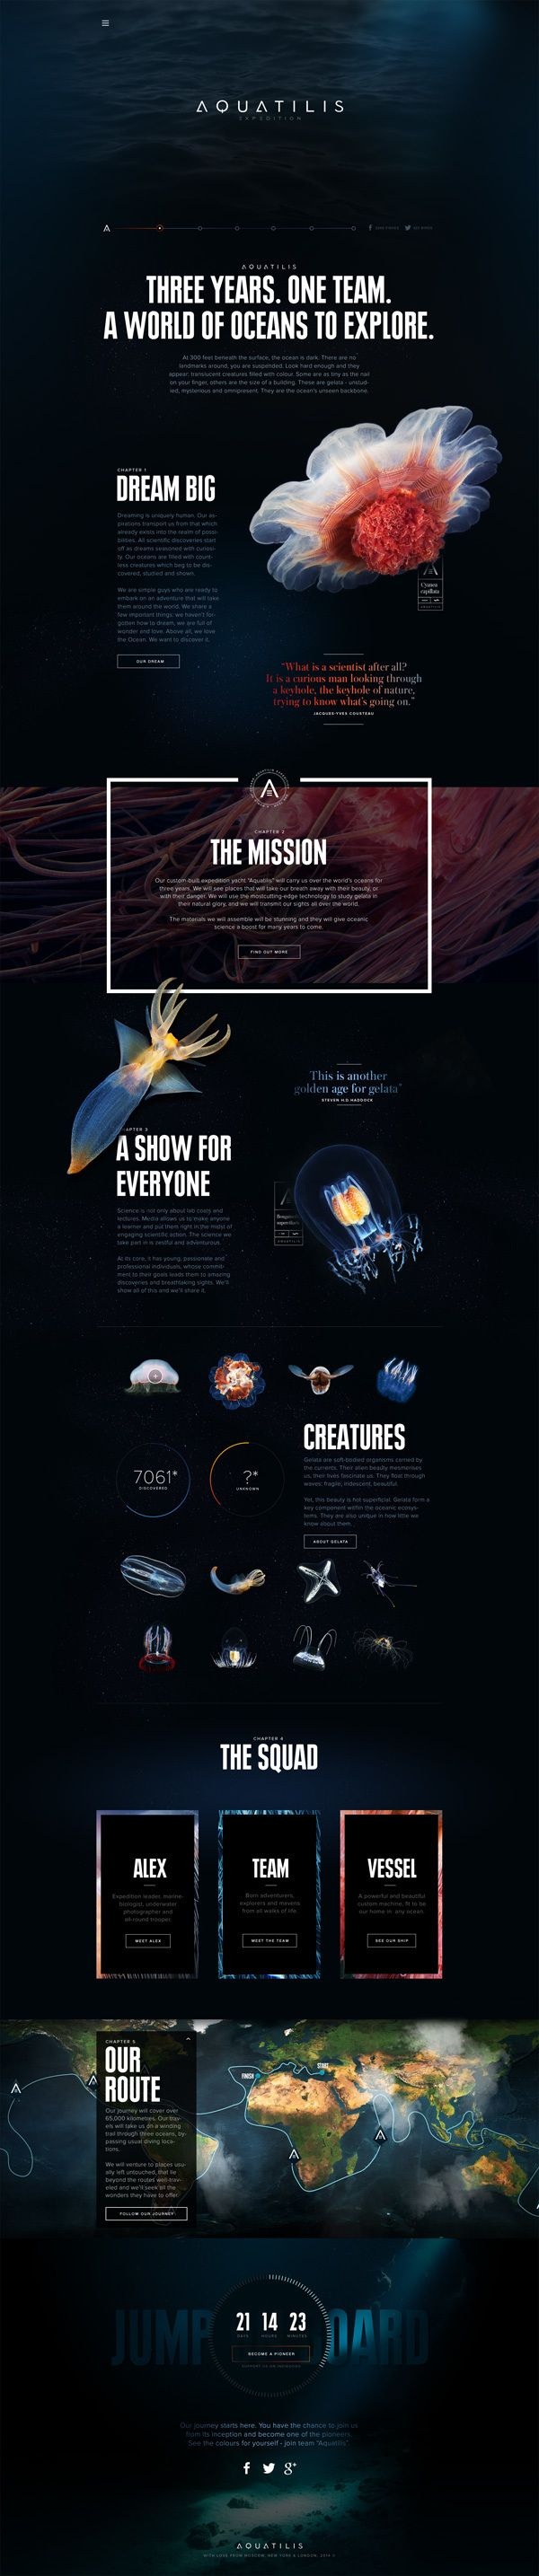 Aquatilis Expedition on Behance.